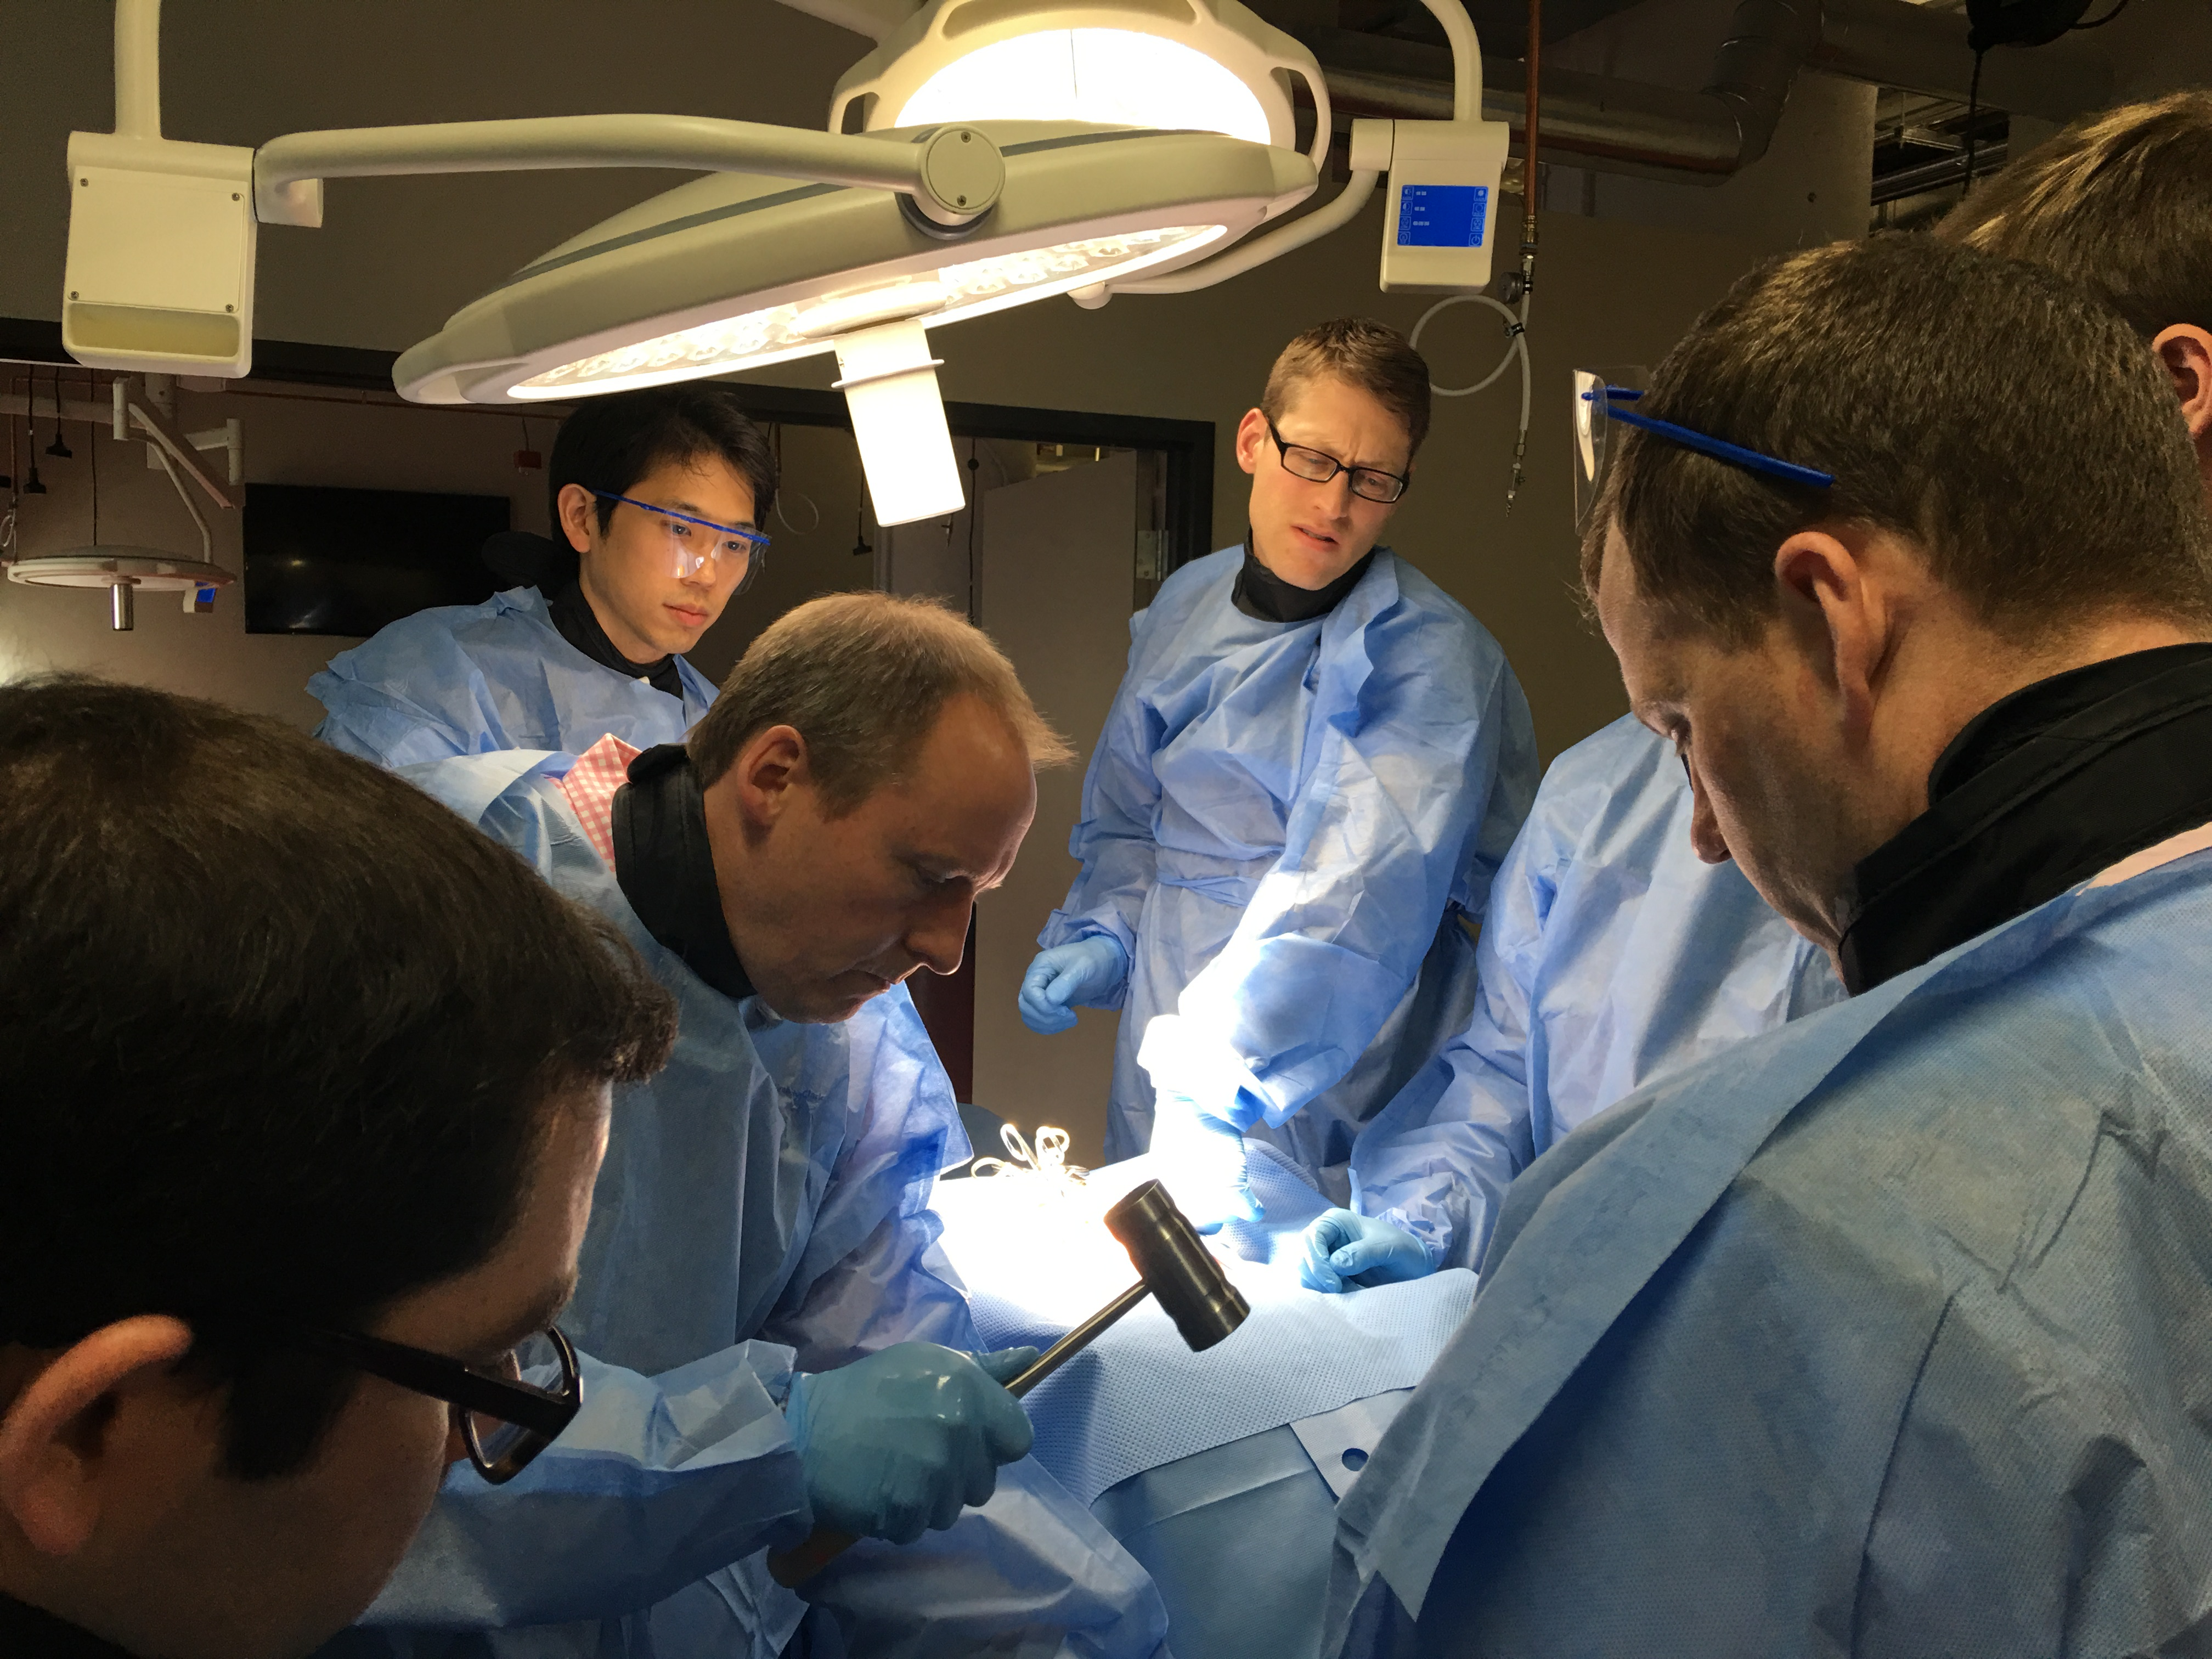 Nerves&Bones Hosts First Annual Orthopedic Spine IVY Fellows/Resident Course